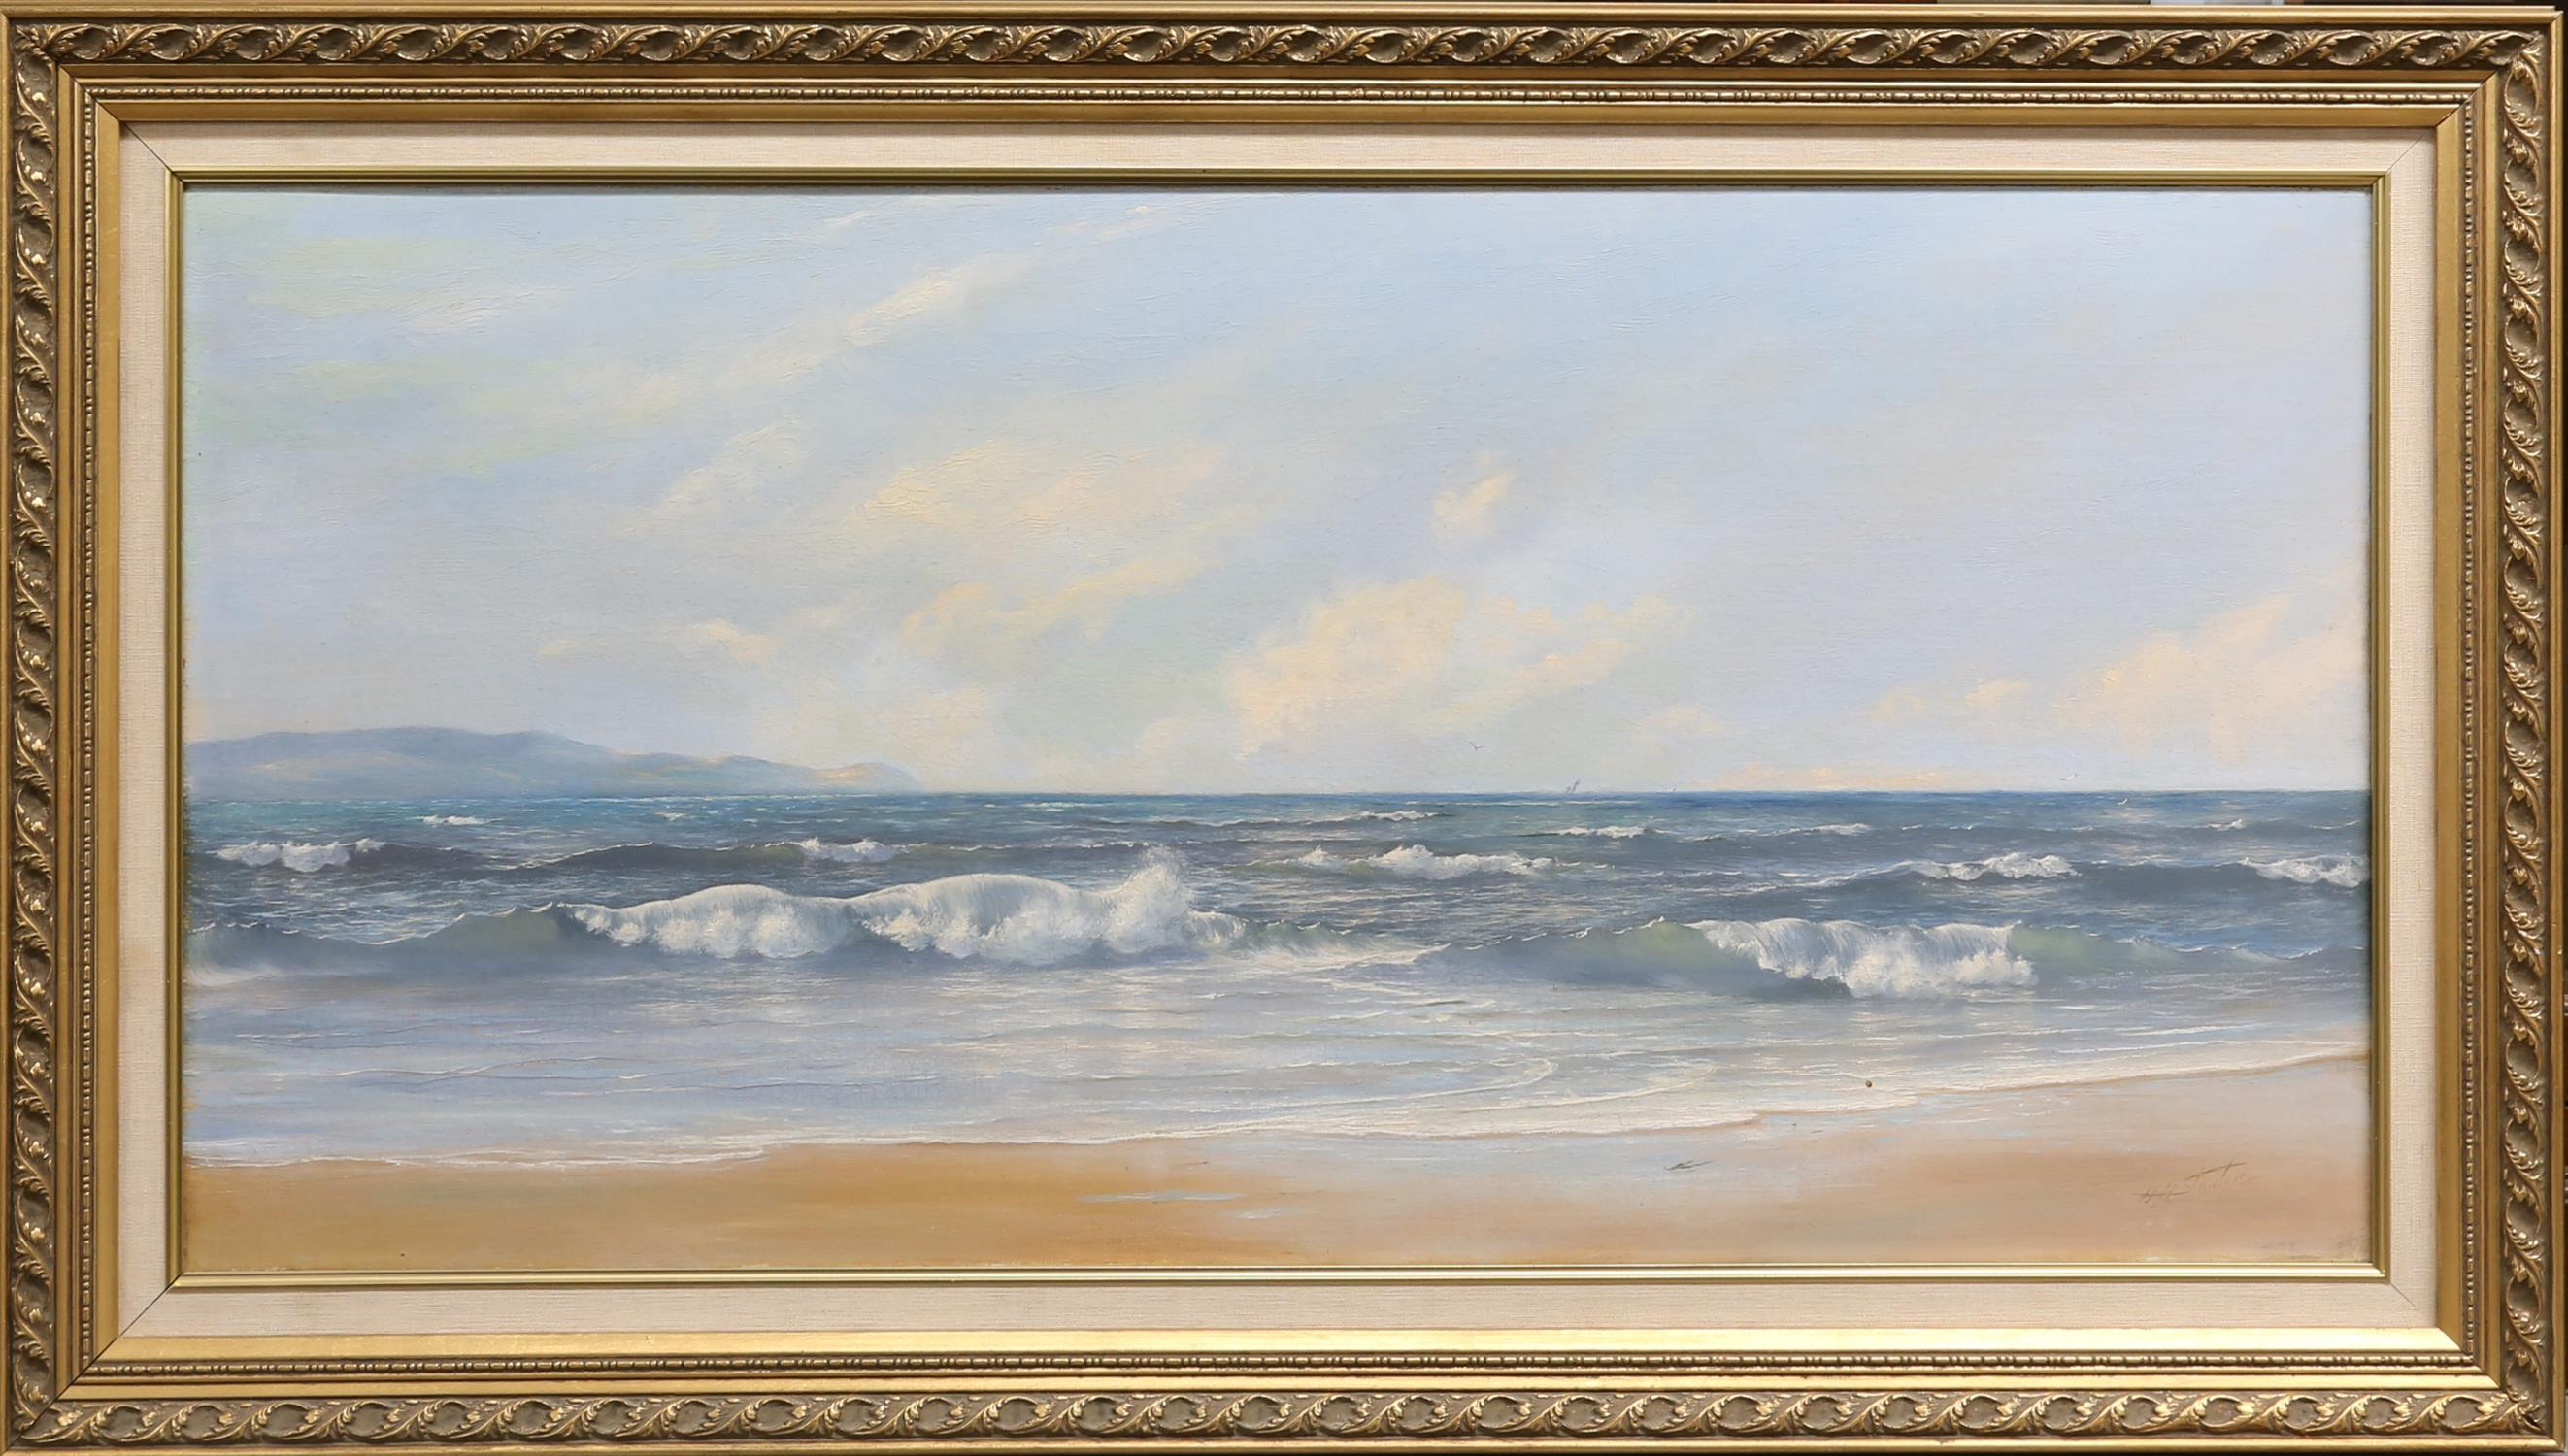 H. H. Stanton (British, twentieth century), seascape. Oil on canvas. Signed lower right. Framed. - Image 2 of 3